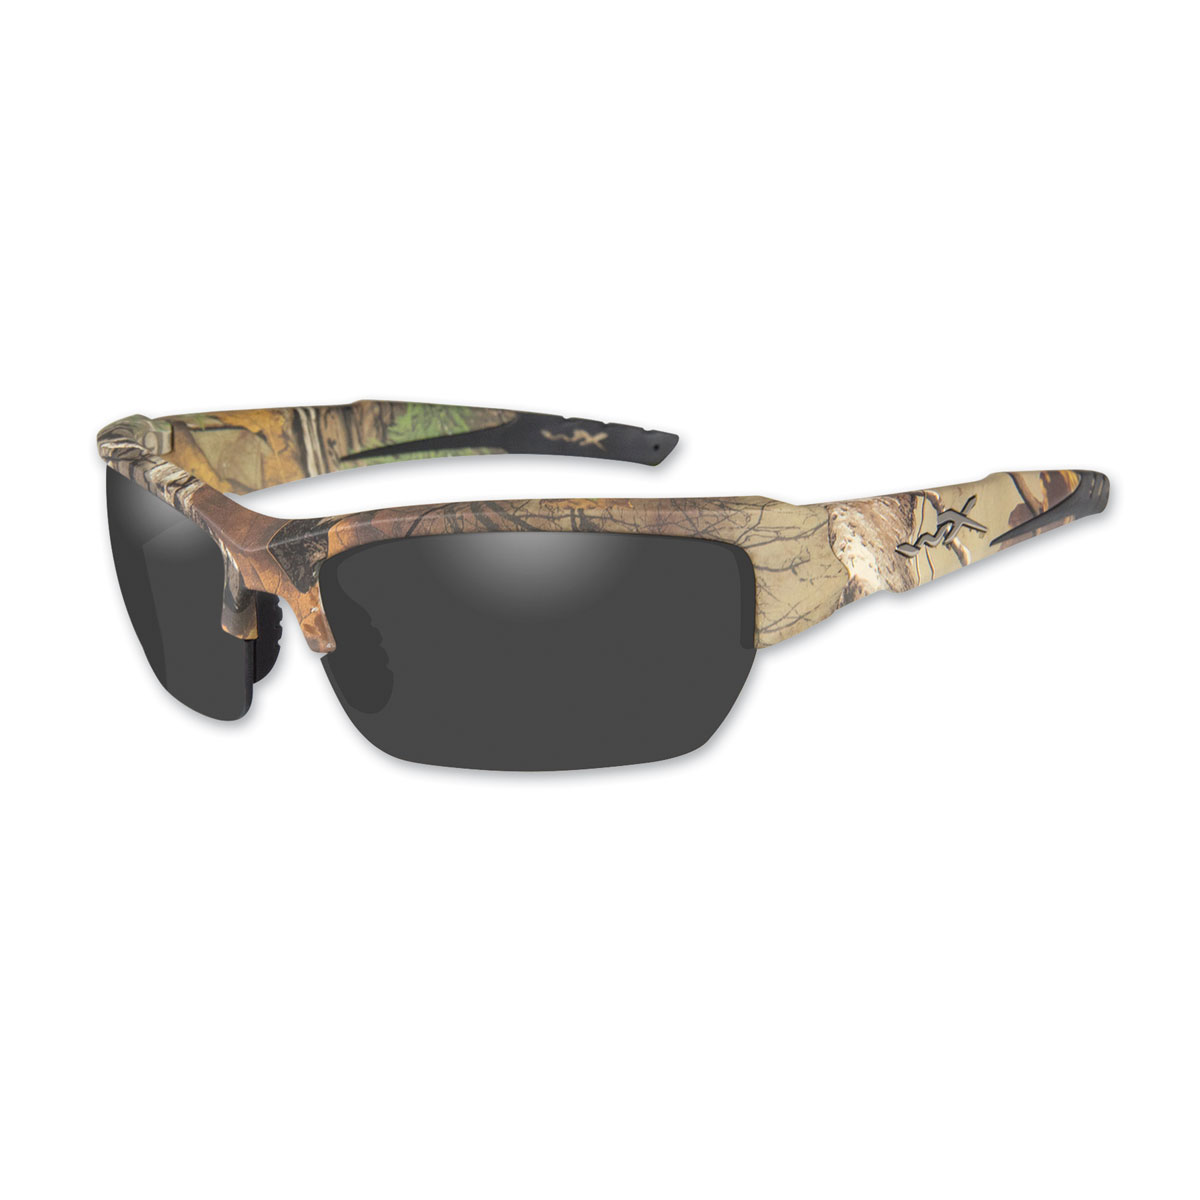 57717d7c3e Wiley X Valor Realtree XTRA Camo Sunglasses with Smoke Lens ...